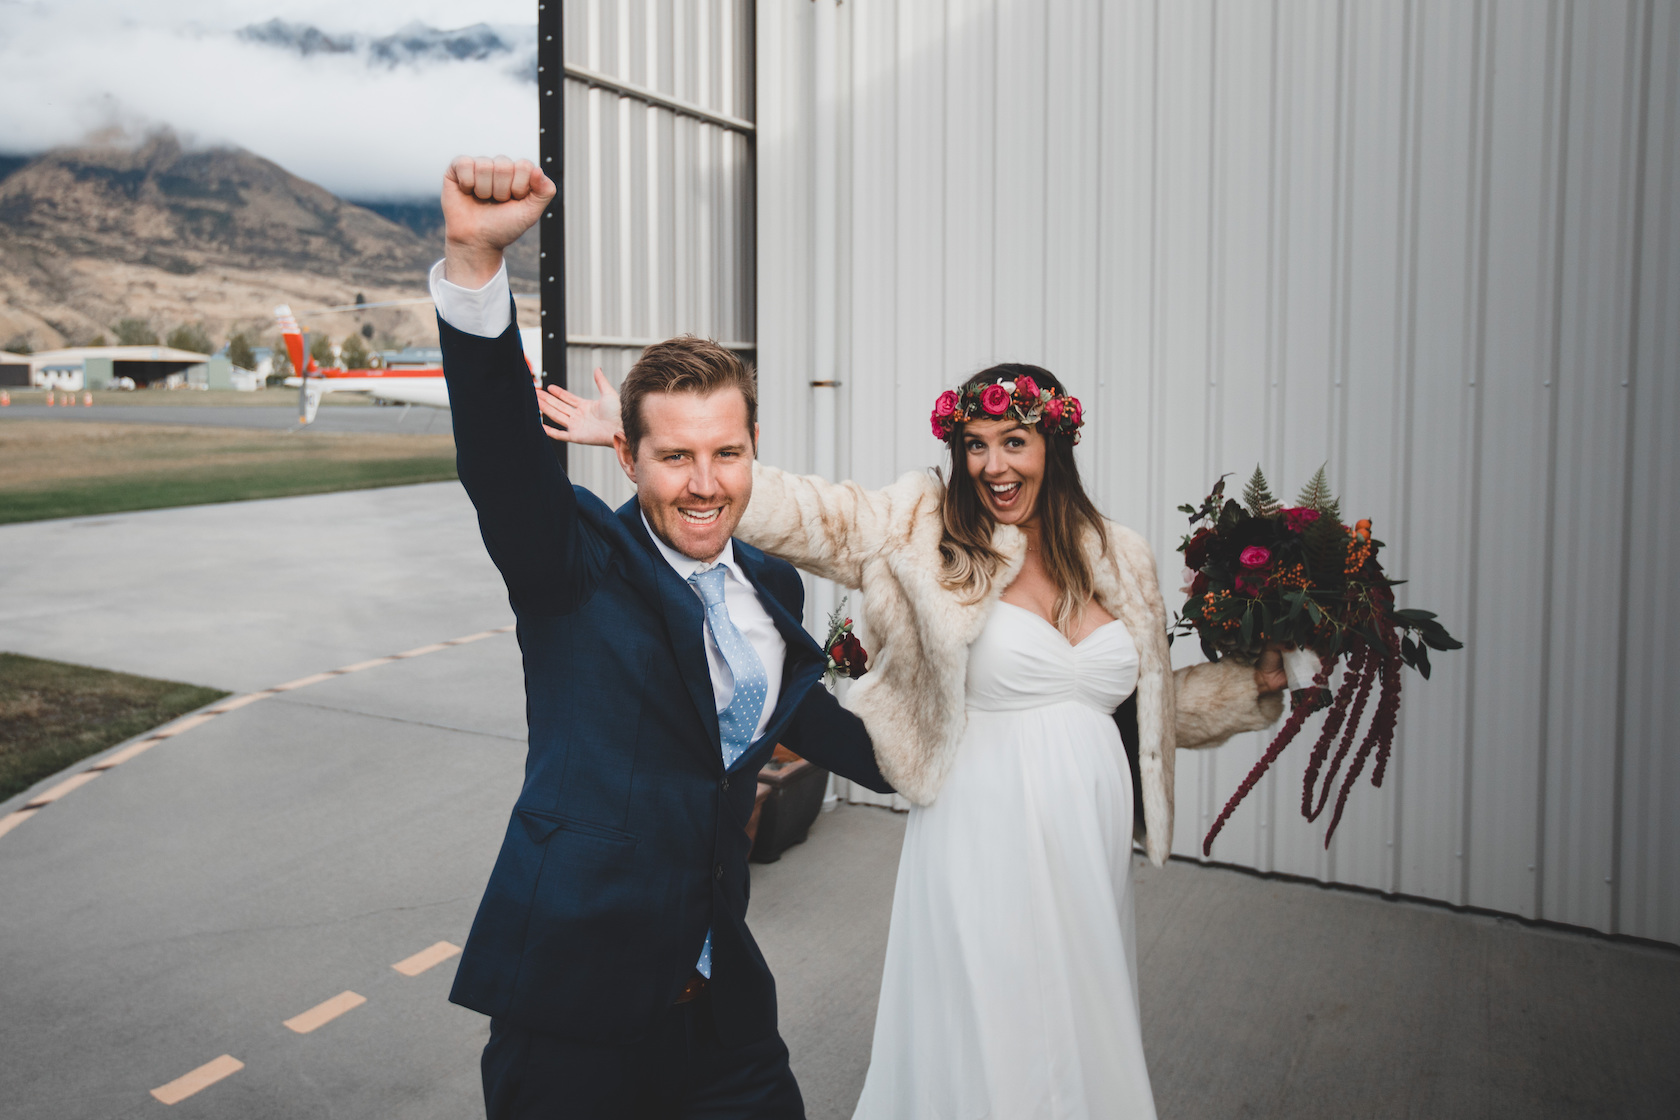 Queenstown Destination Wedding Package